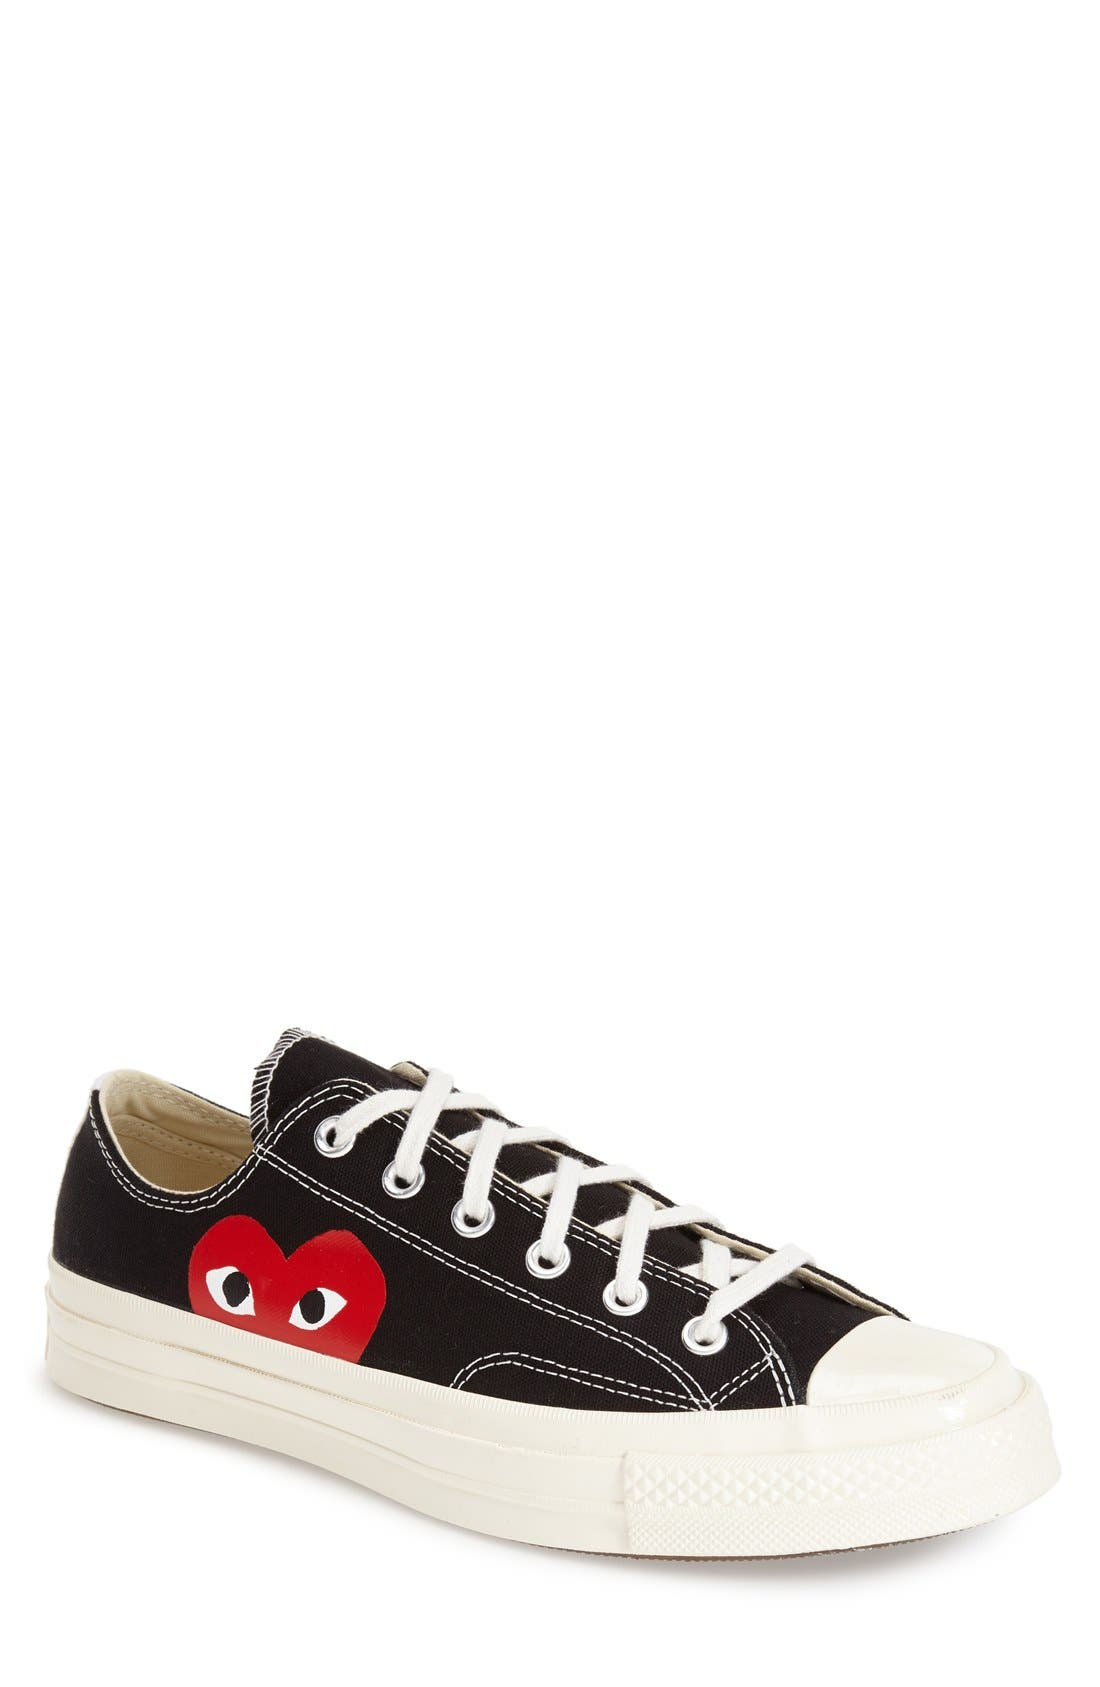 converse play fashion